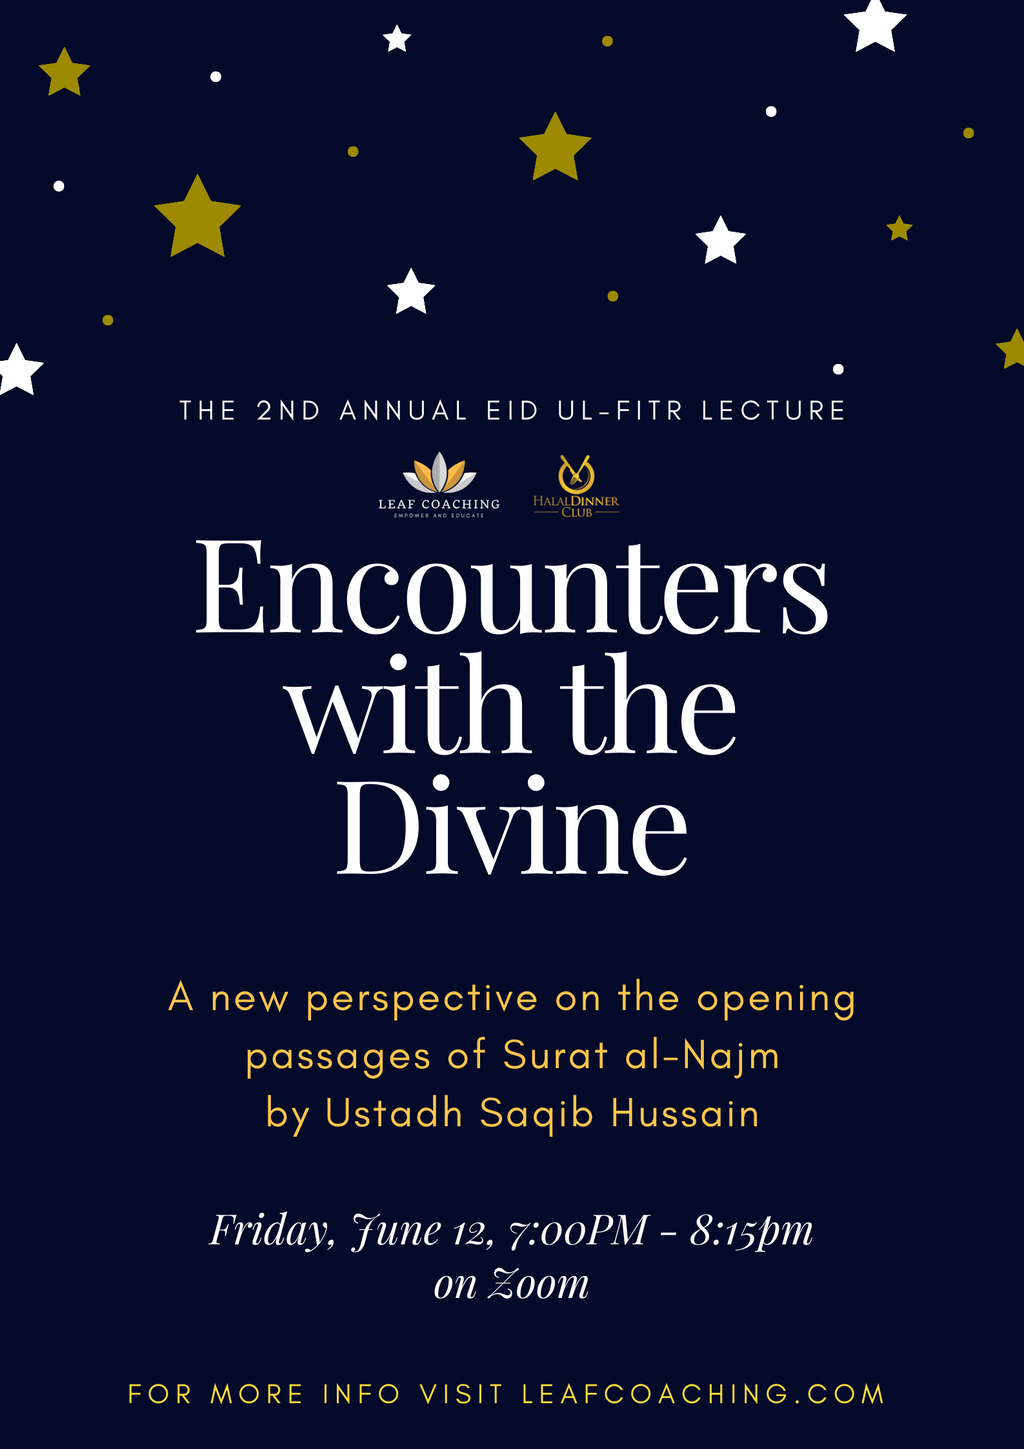 Encounters with the Divine